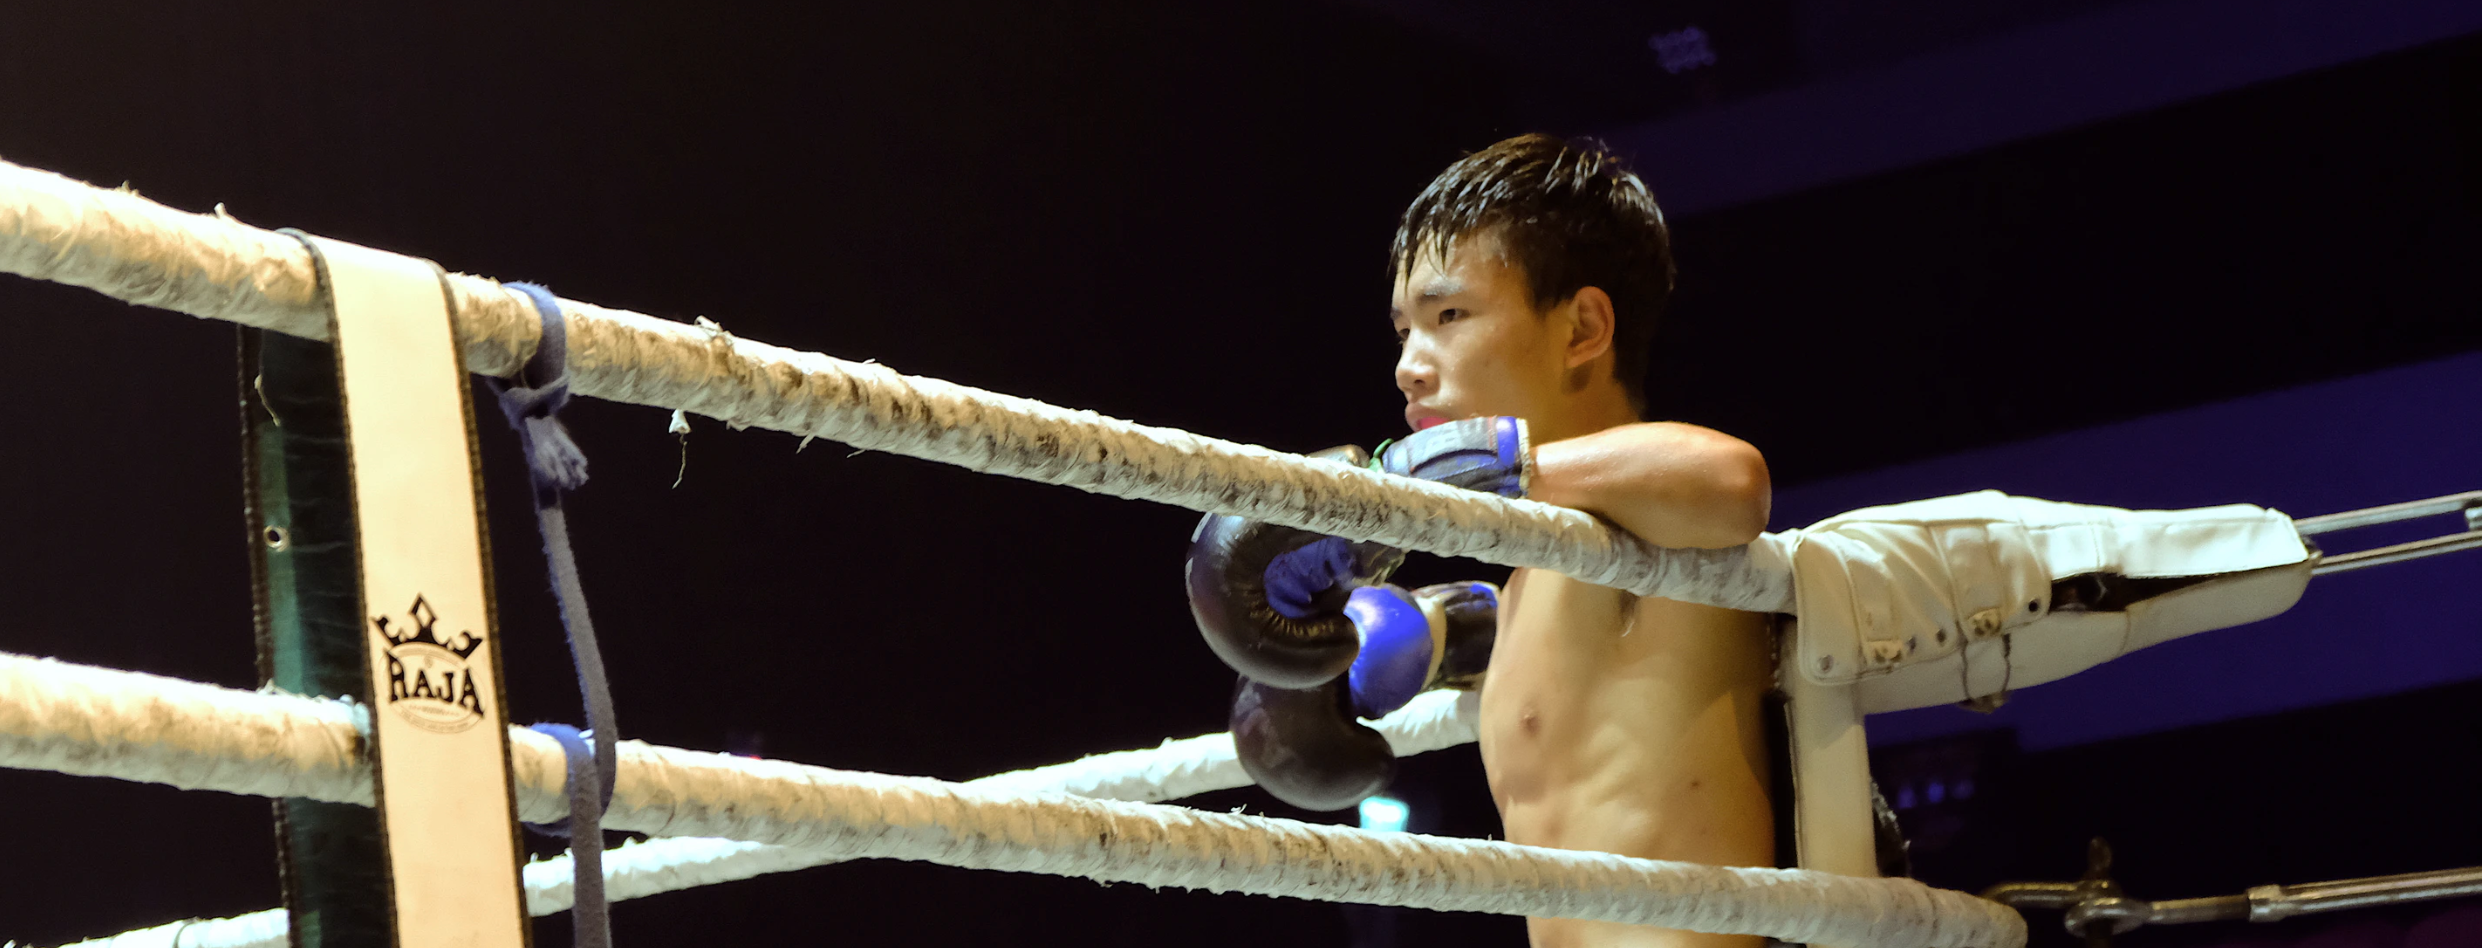 A young Muay Thai practitioner waiting for the bell in his corner